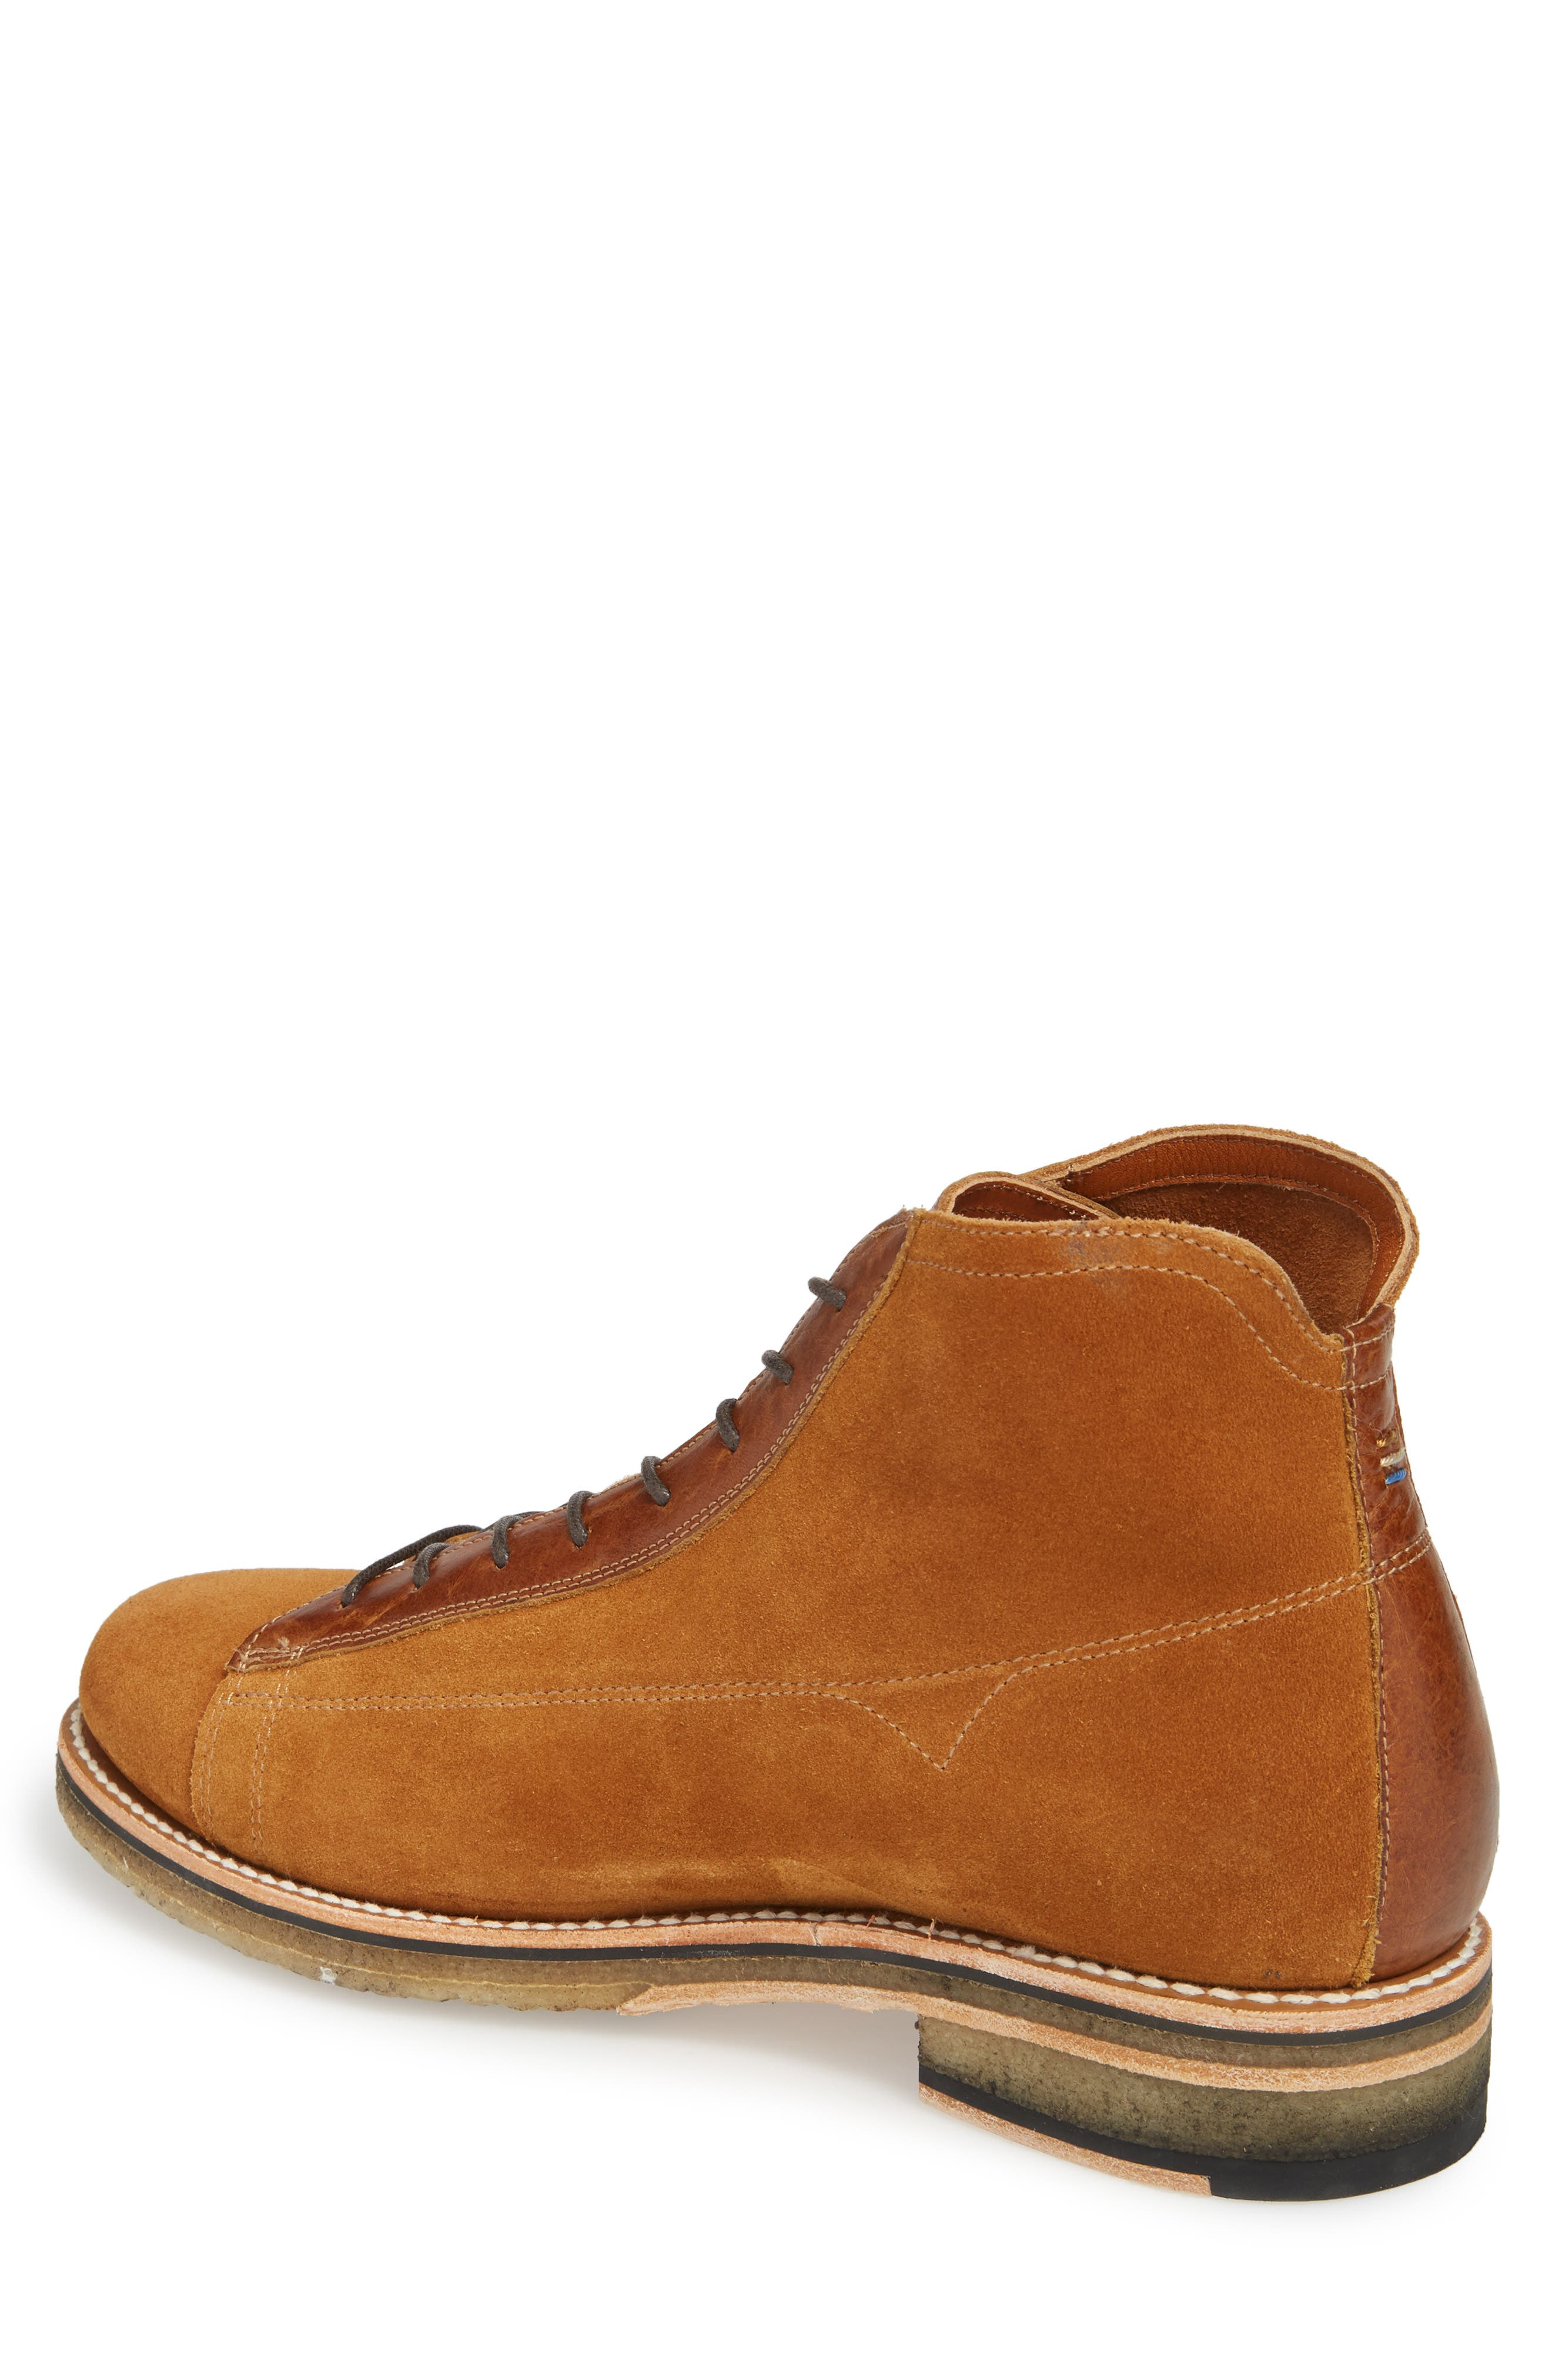 Two24 by Ariat Webster Boot,                             Alternate thumbnail 3, color,